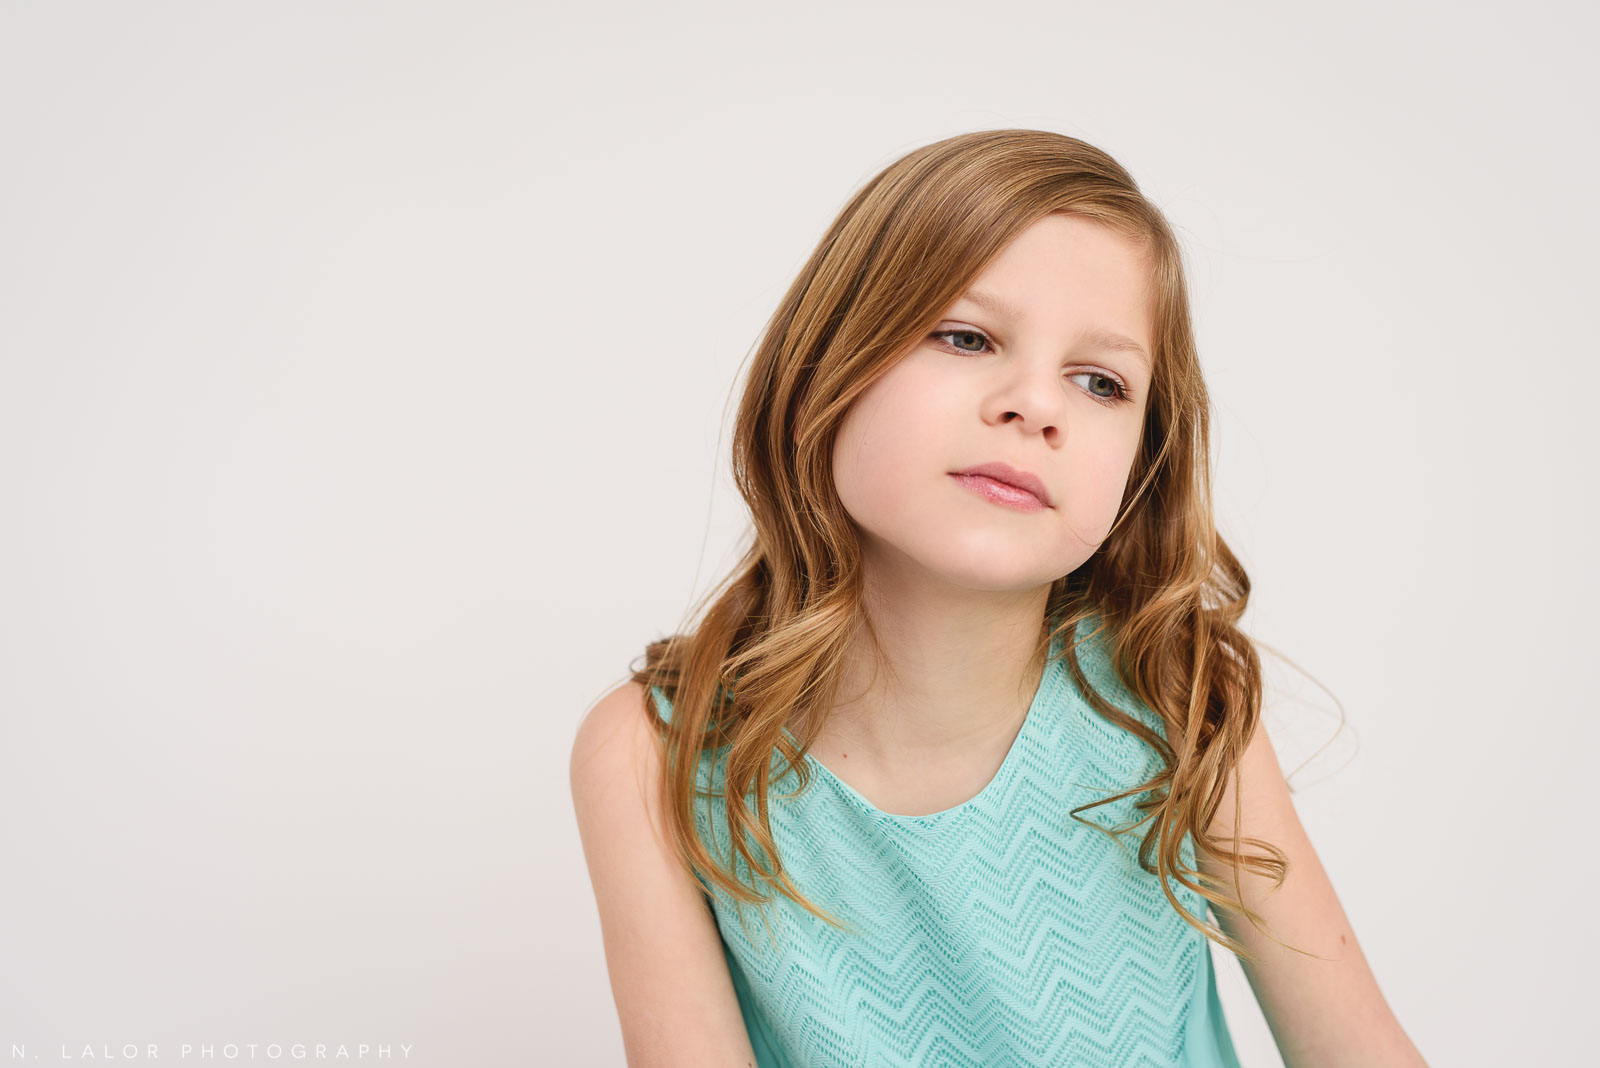 A portrait of a 9 year old girl. Tween photo session with N. Lalor Photography. Studio located in Greenwich, Connecticut.